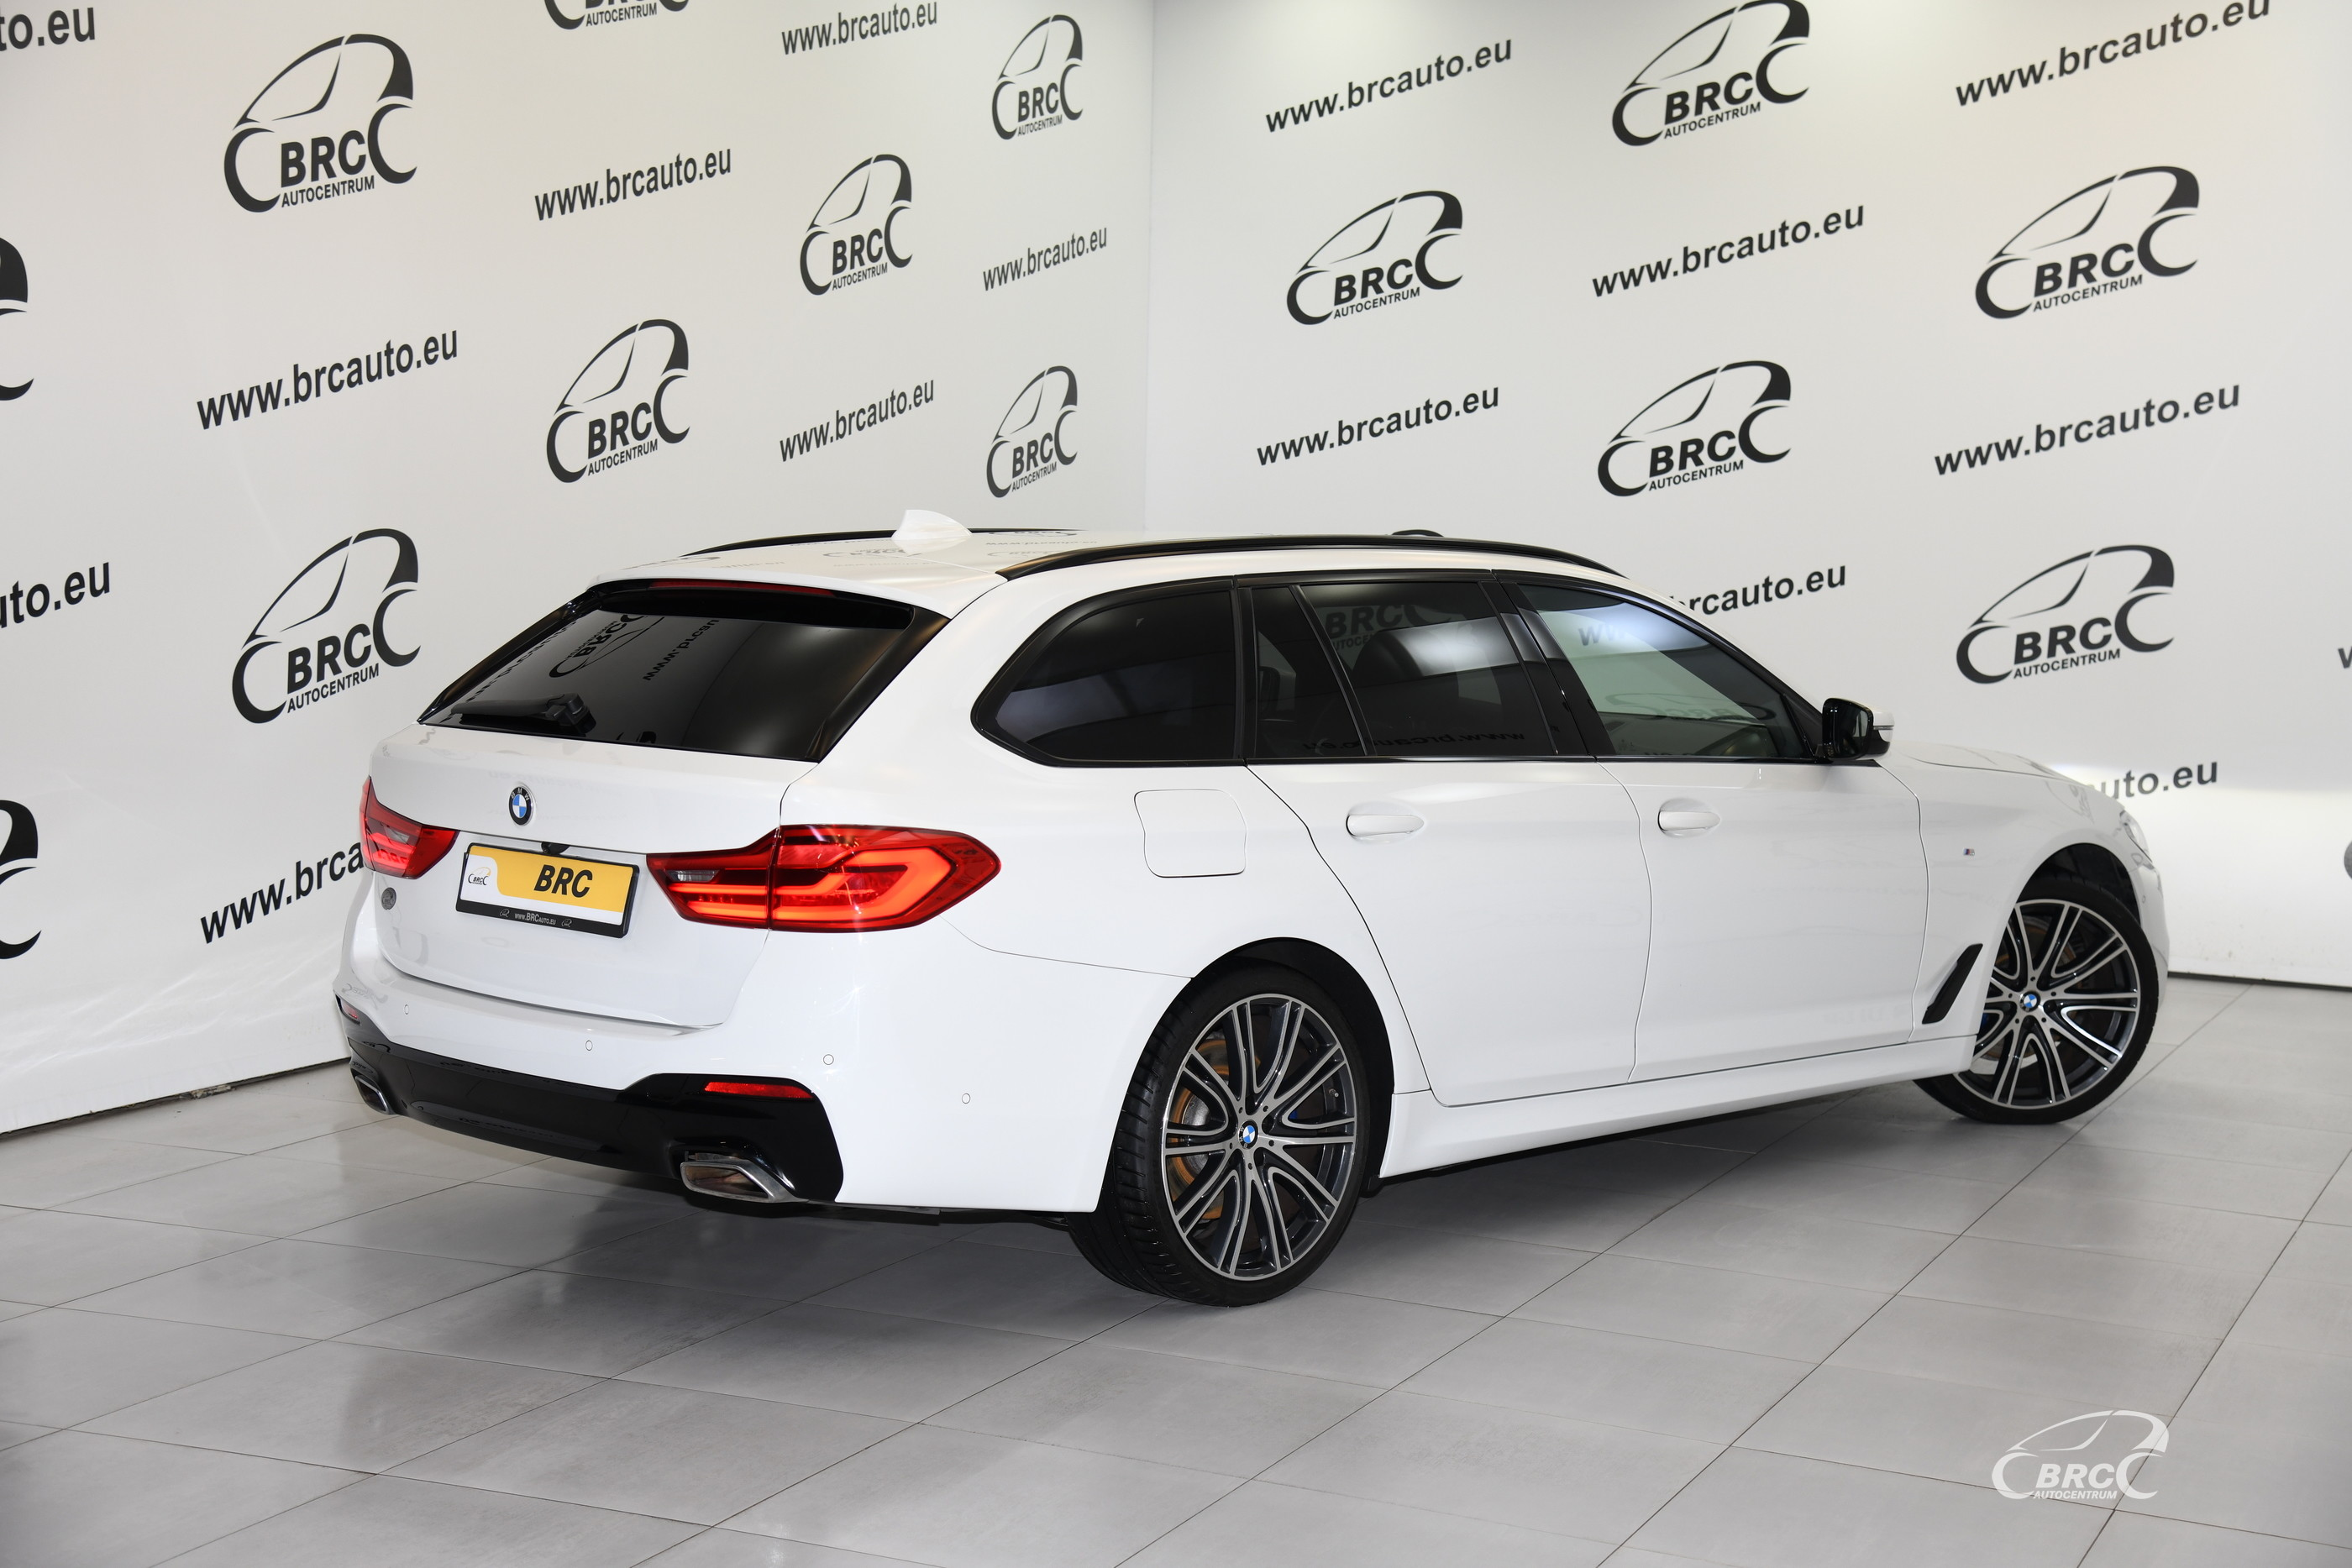 BMW 530 d Touring M-packet Automatas